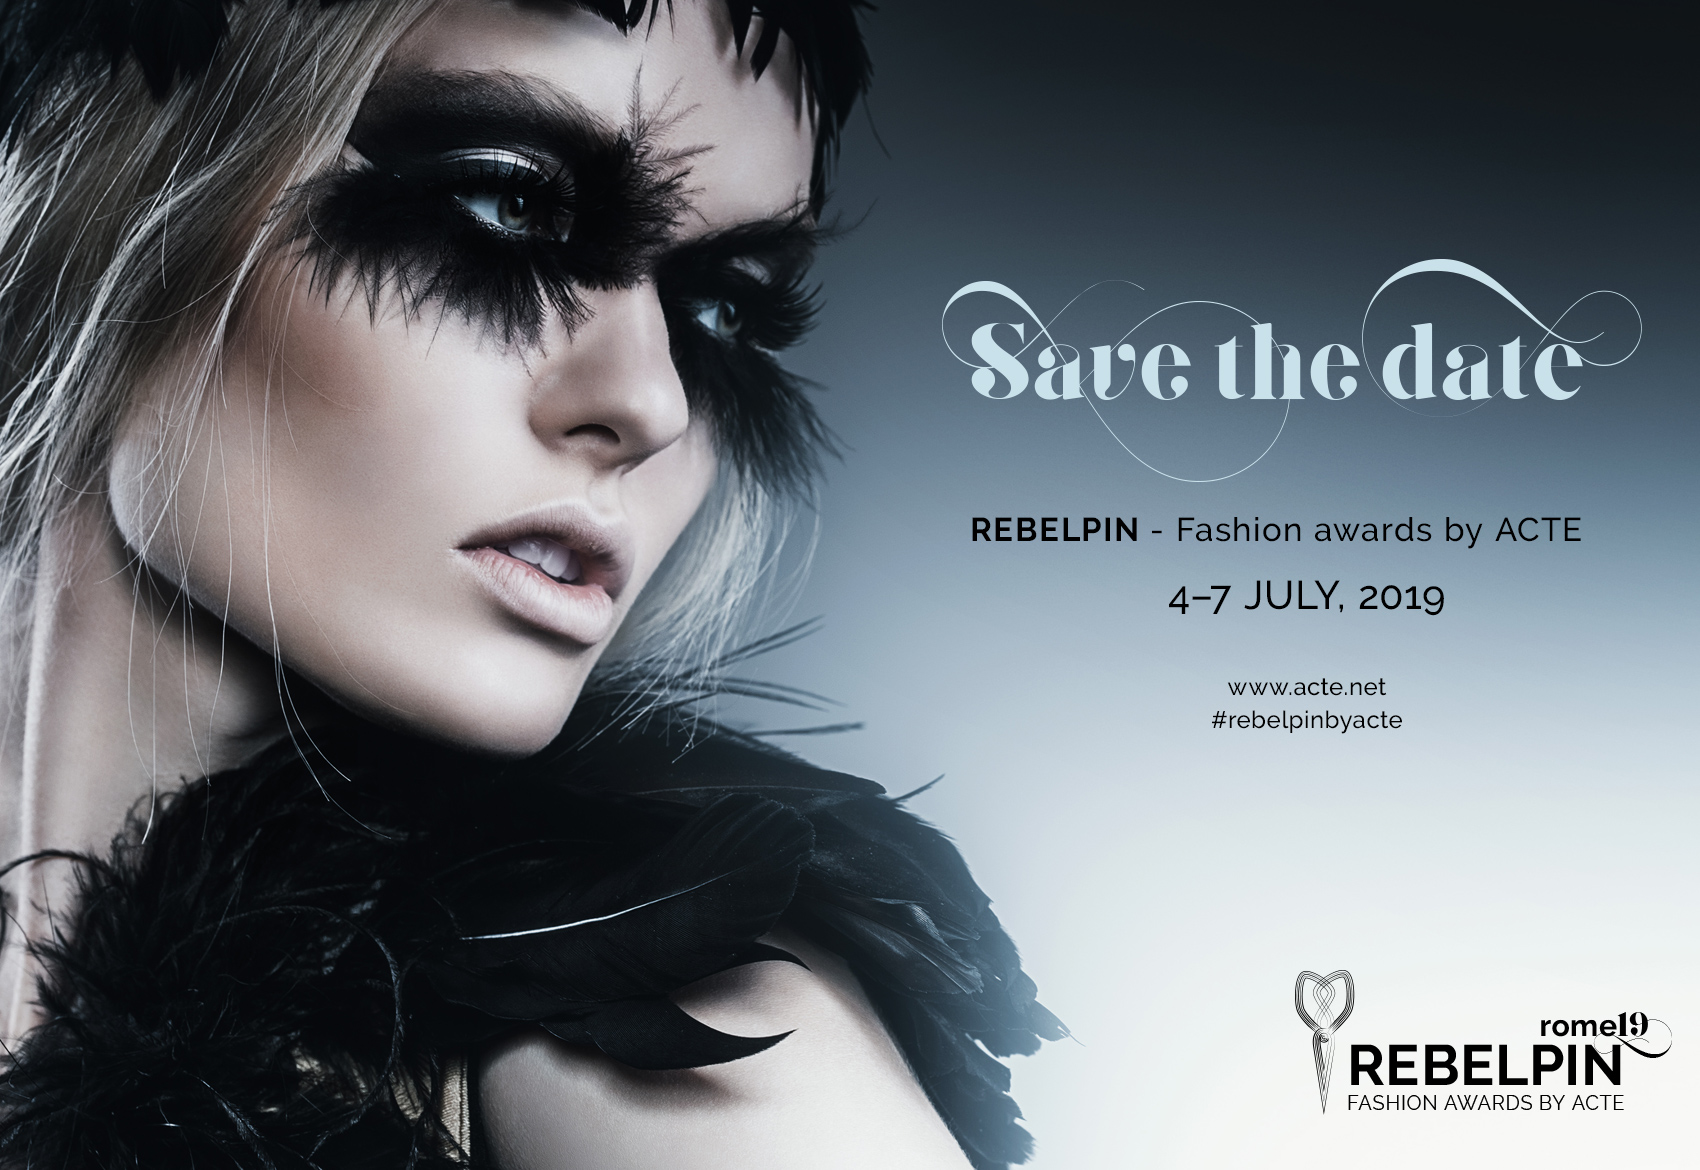 RebelPin2019 Save the date 1700x1170 v3